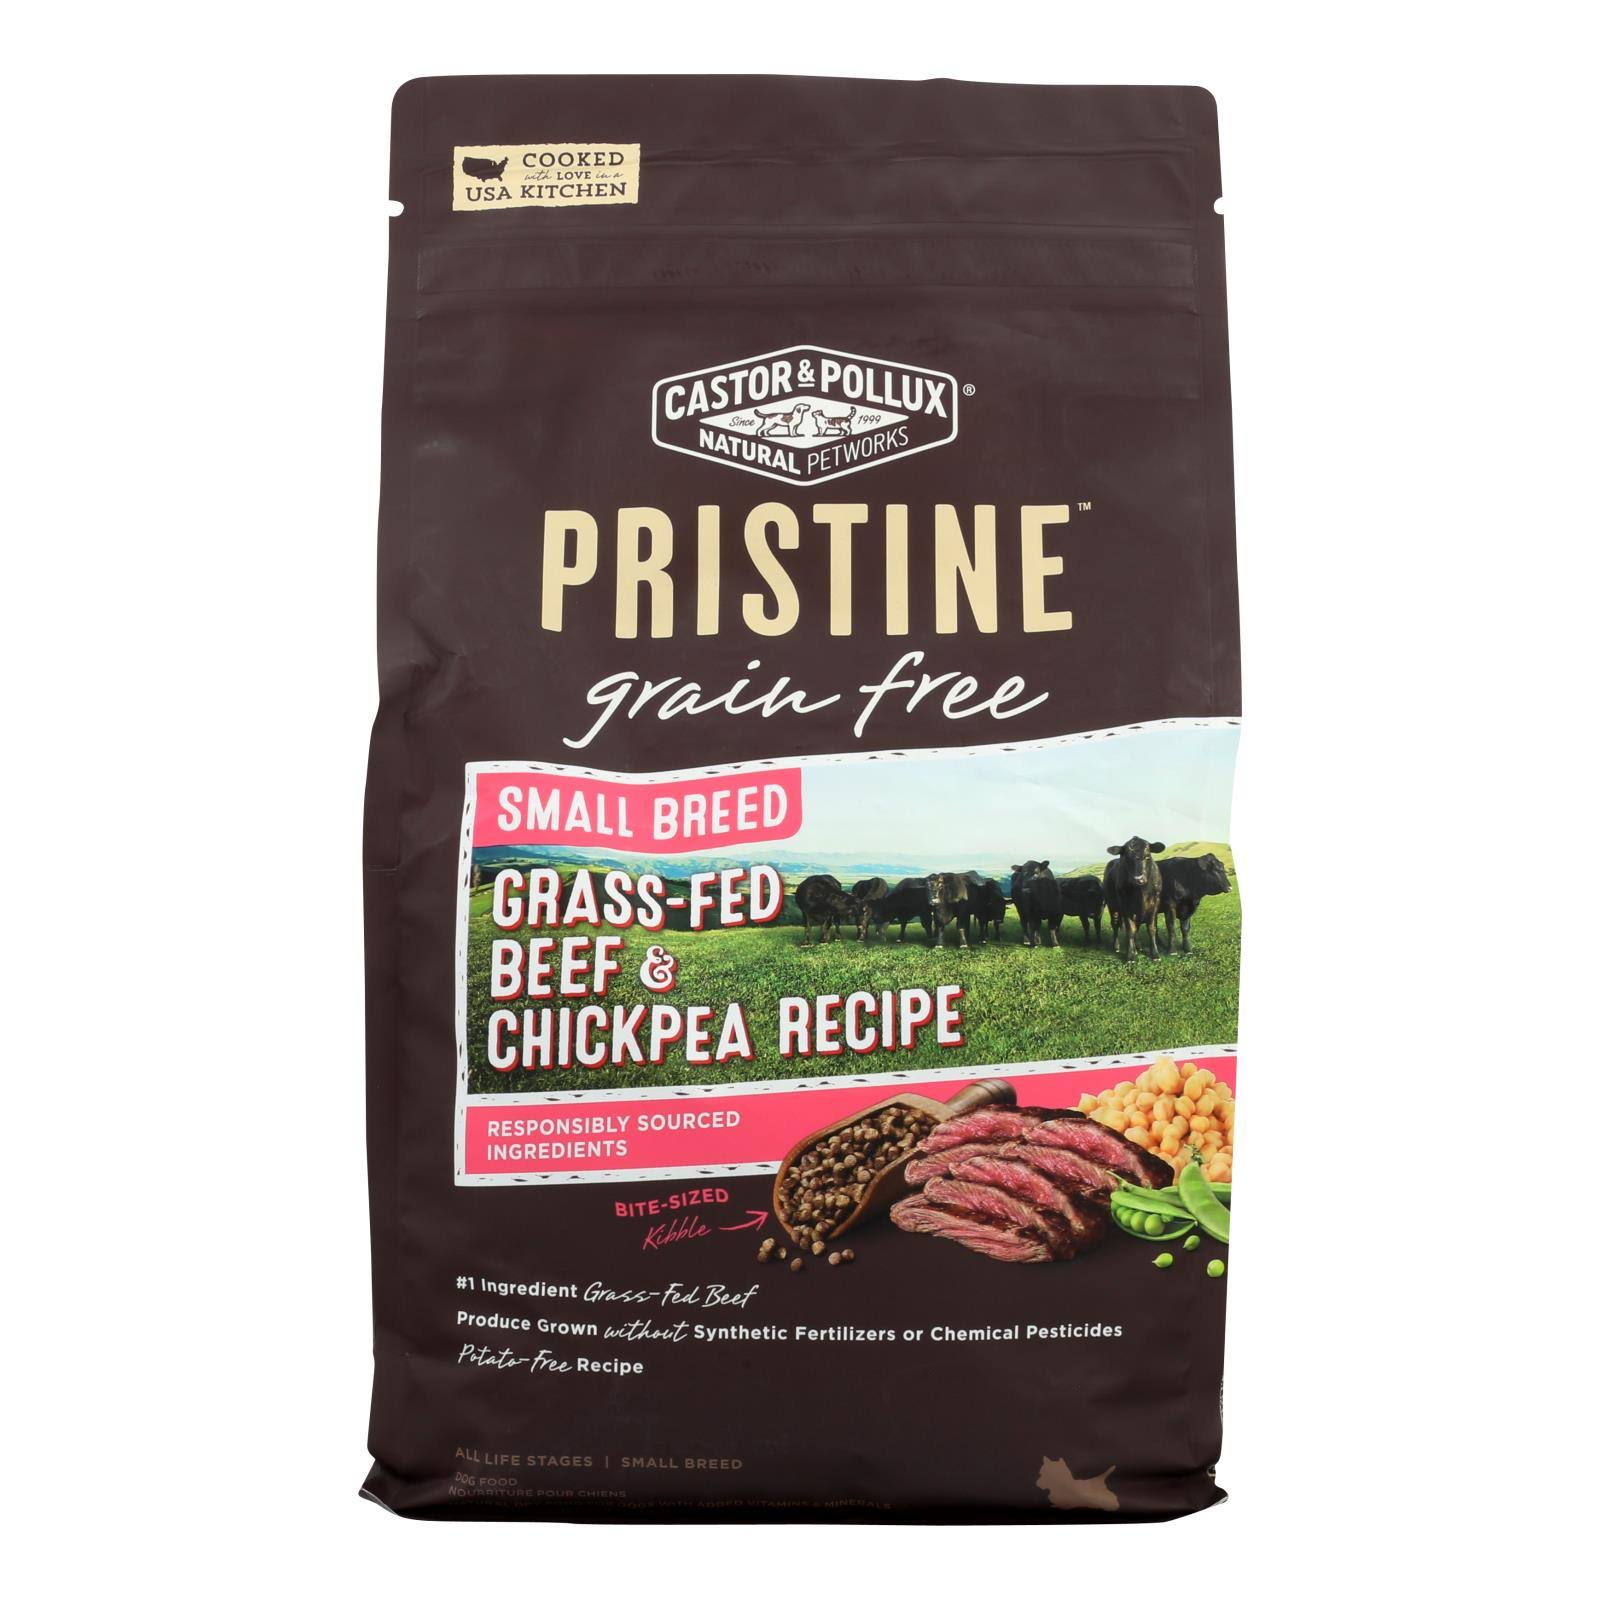 Castor & Pollux Pristine Grain Free Small Breed Grass-Fed Beef & Chickpea Recipe Dry Dog Food, 4 lbs.